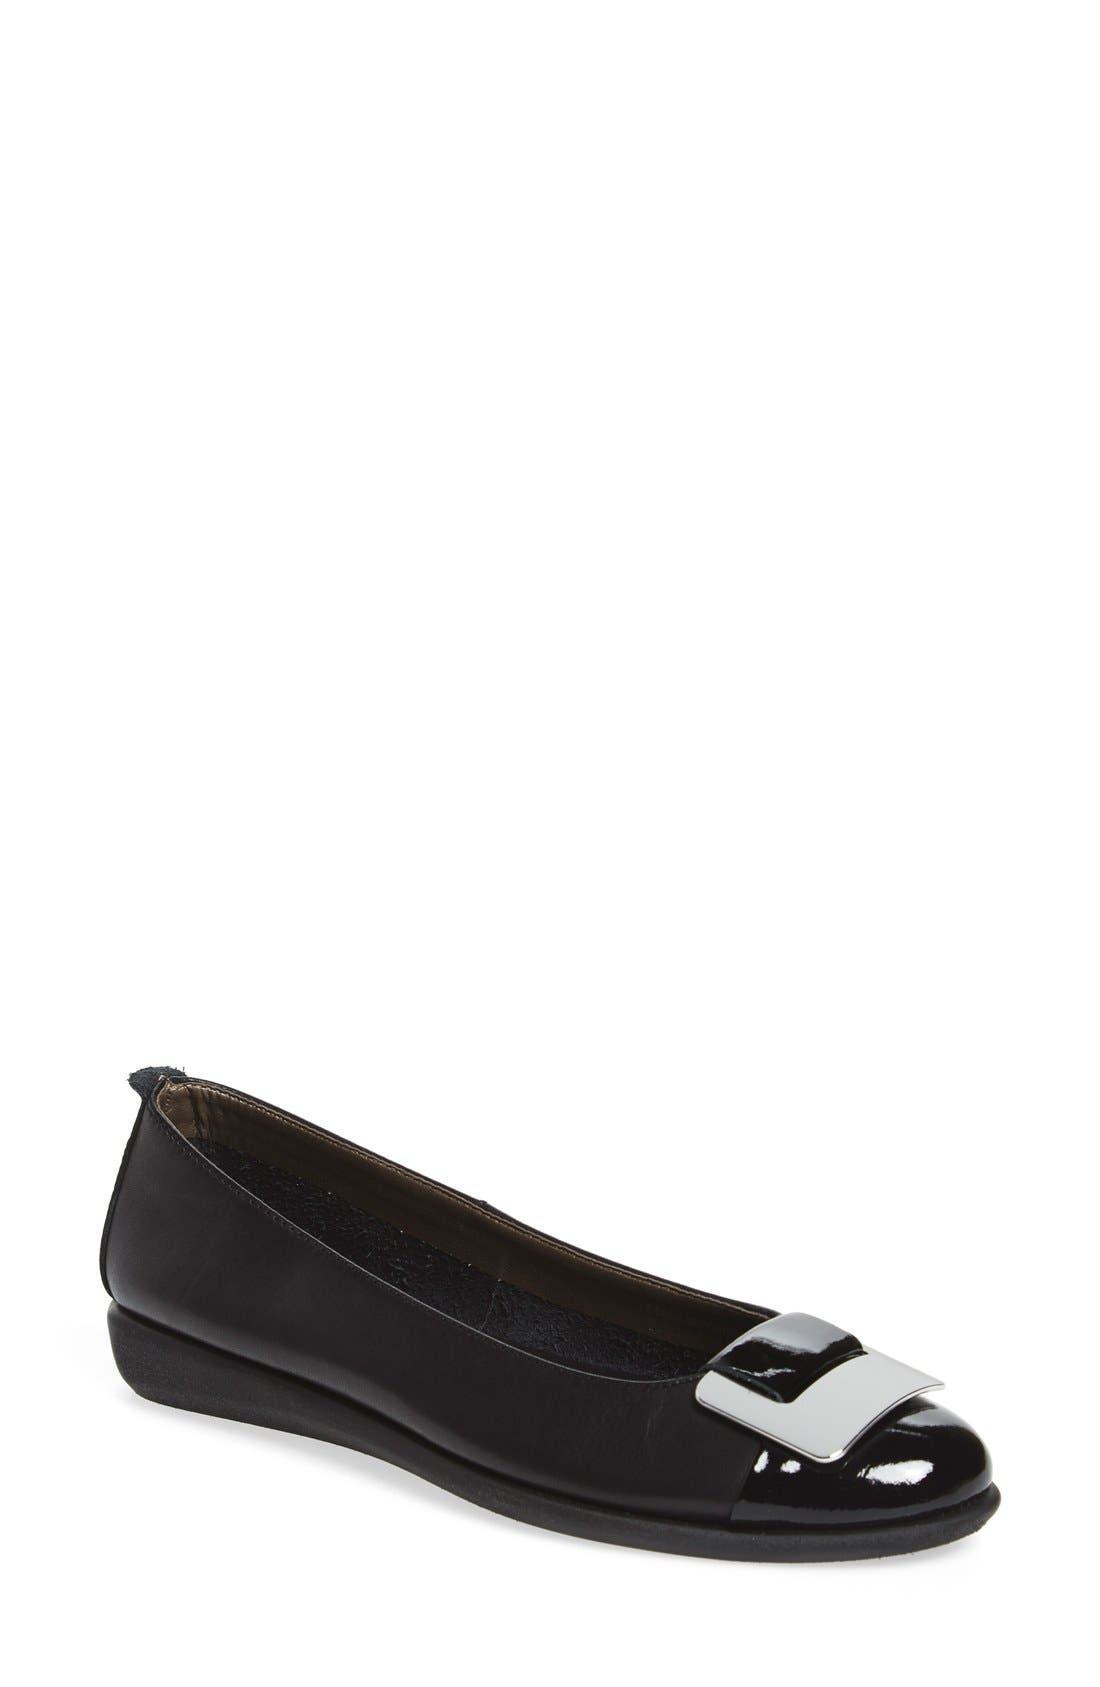 'Rise N Curry' Flat,                         Main,                         color, Black Cashmere Leather